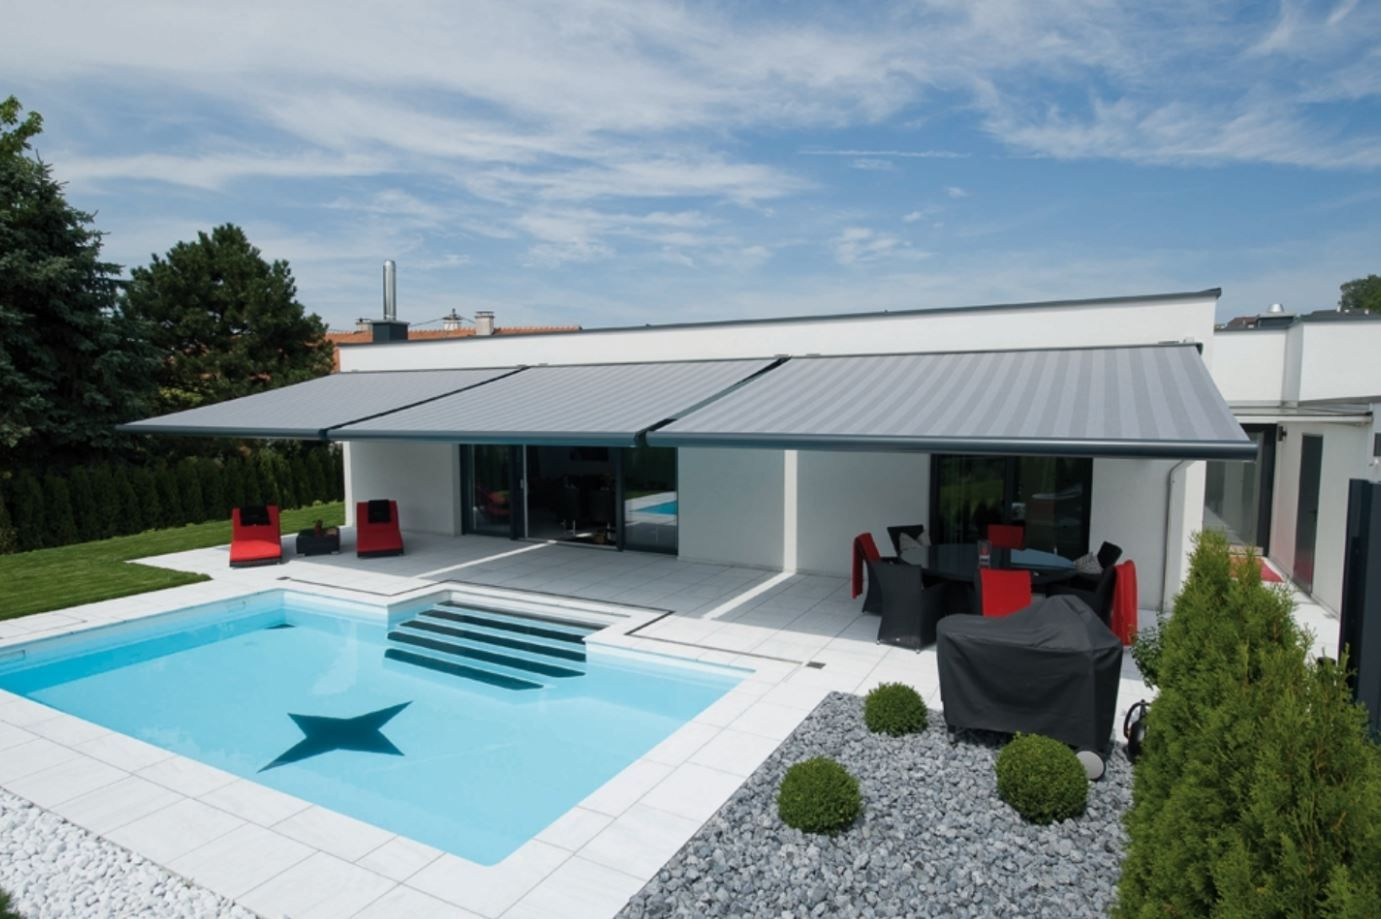 Retractable Folding Arm Awning Systems Brisbane Awning Roofing Systems Outdoor Areas